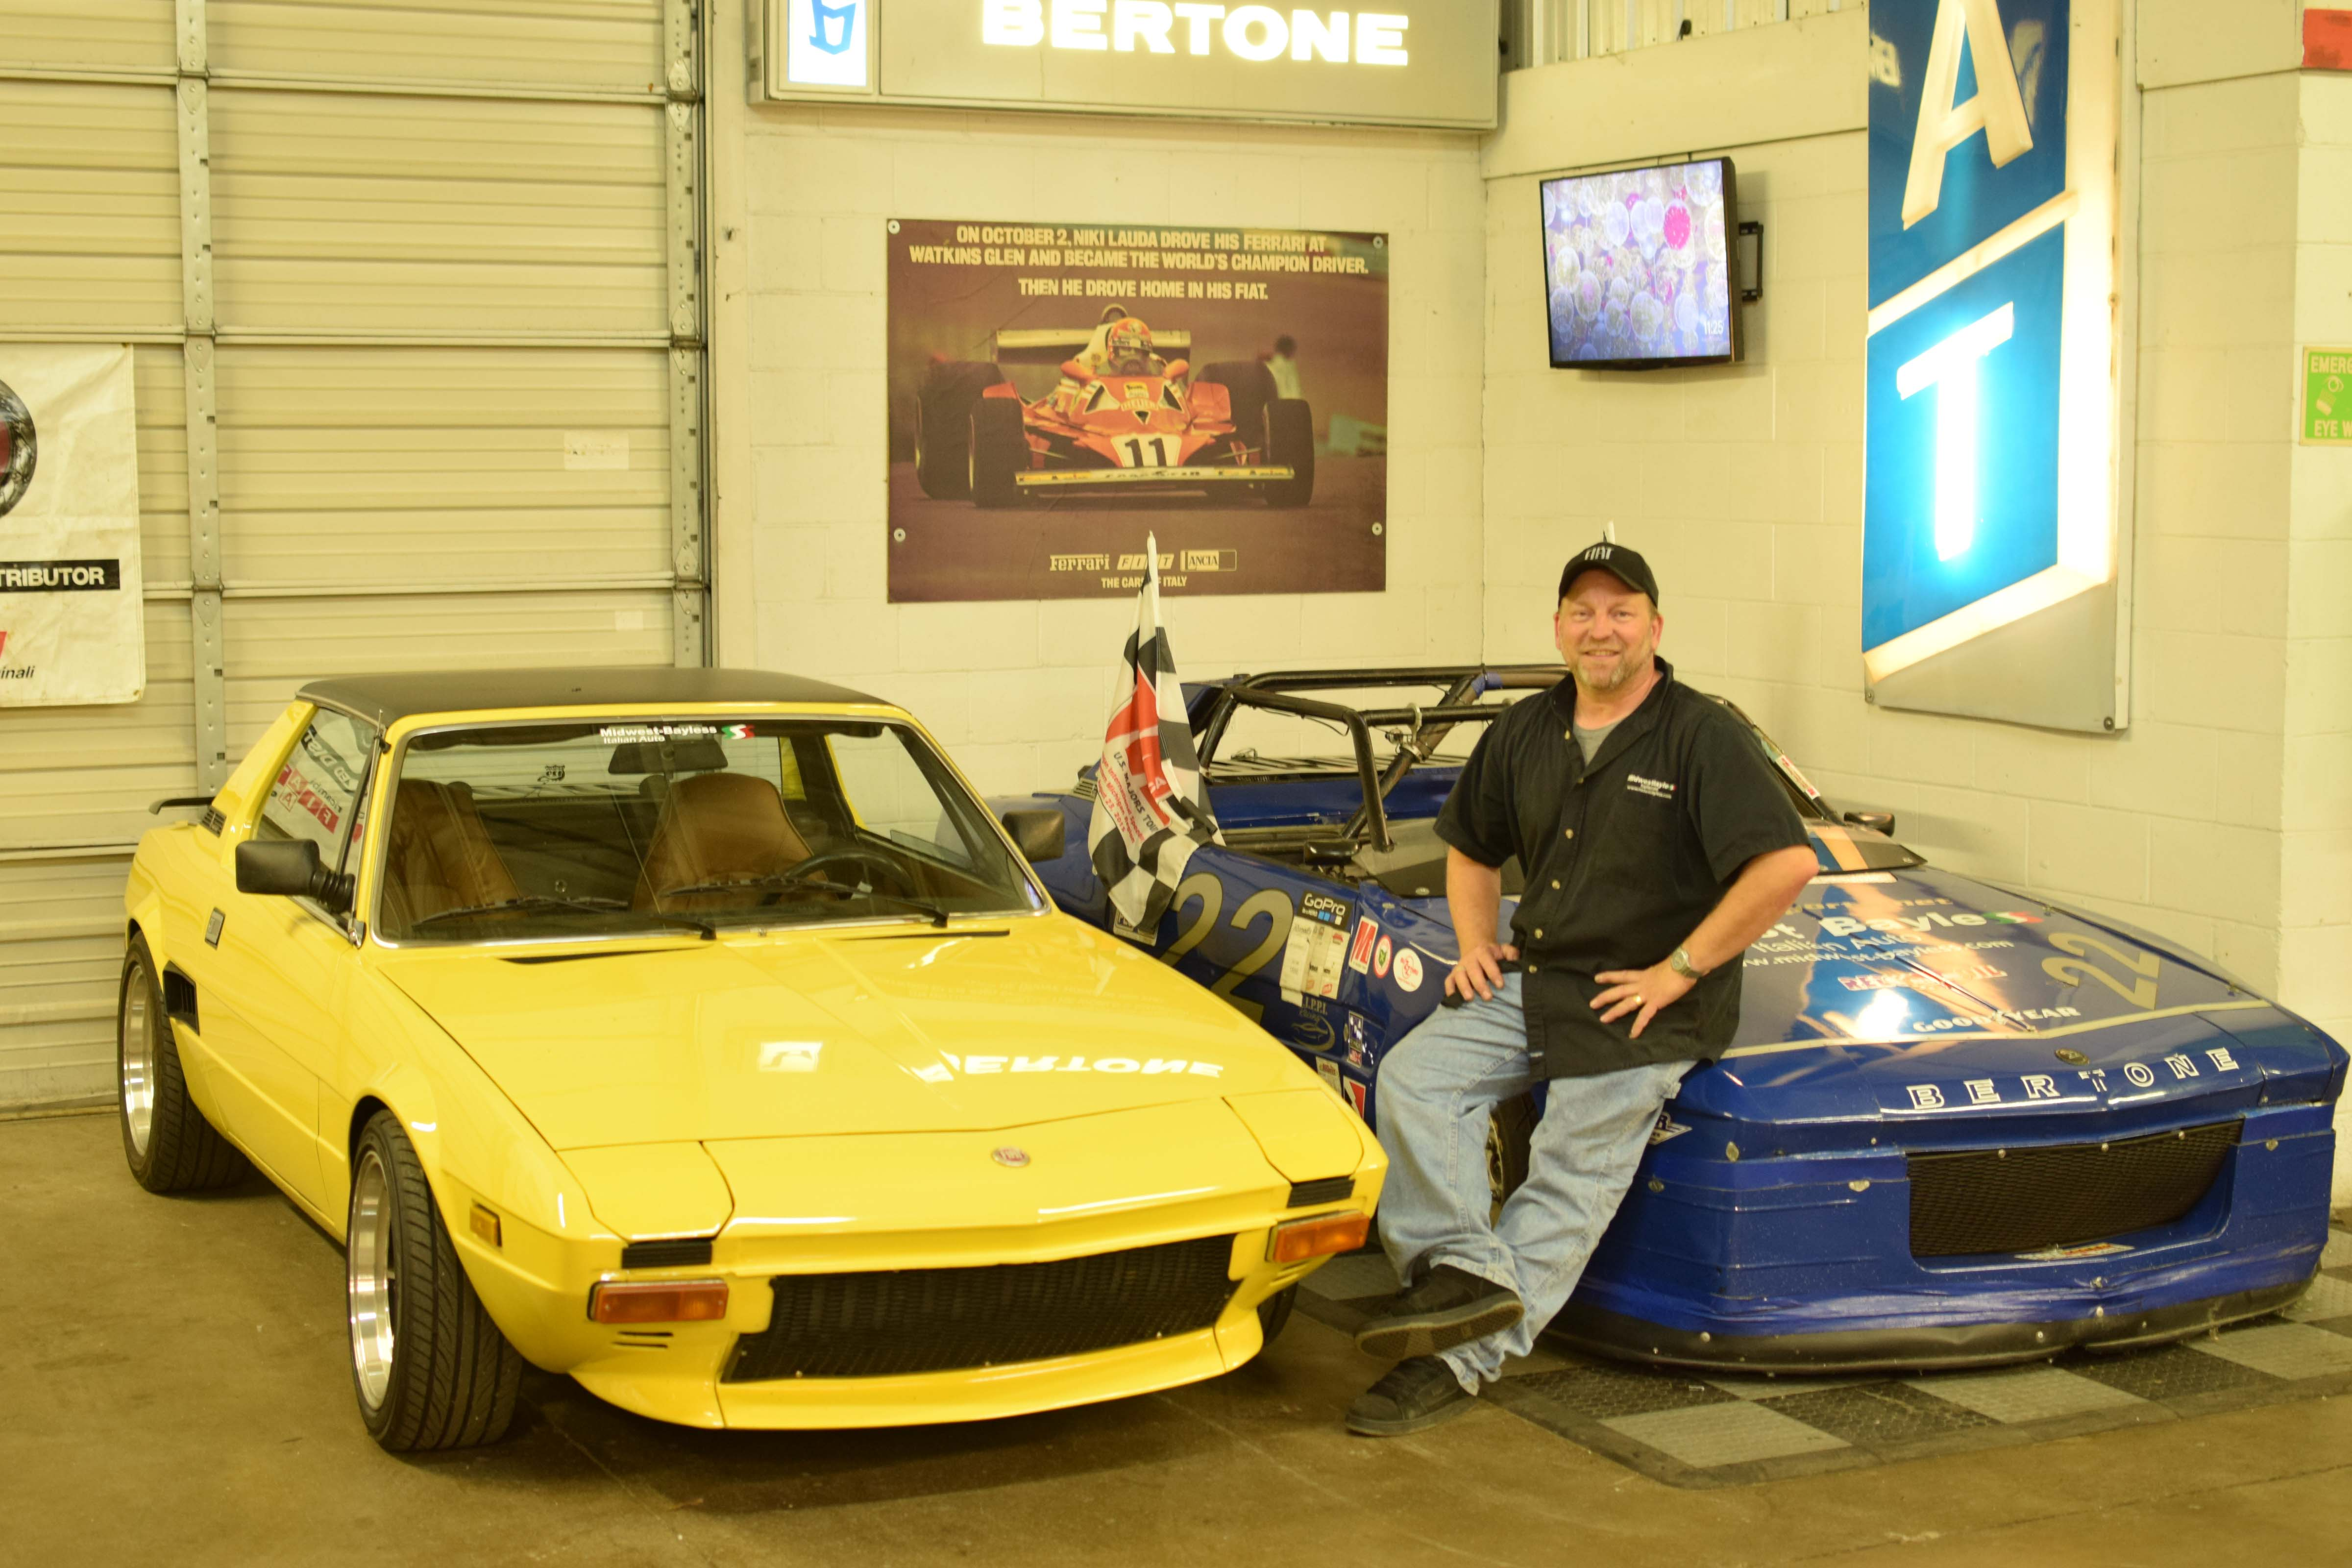 fiat x19 yellow with owner